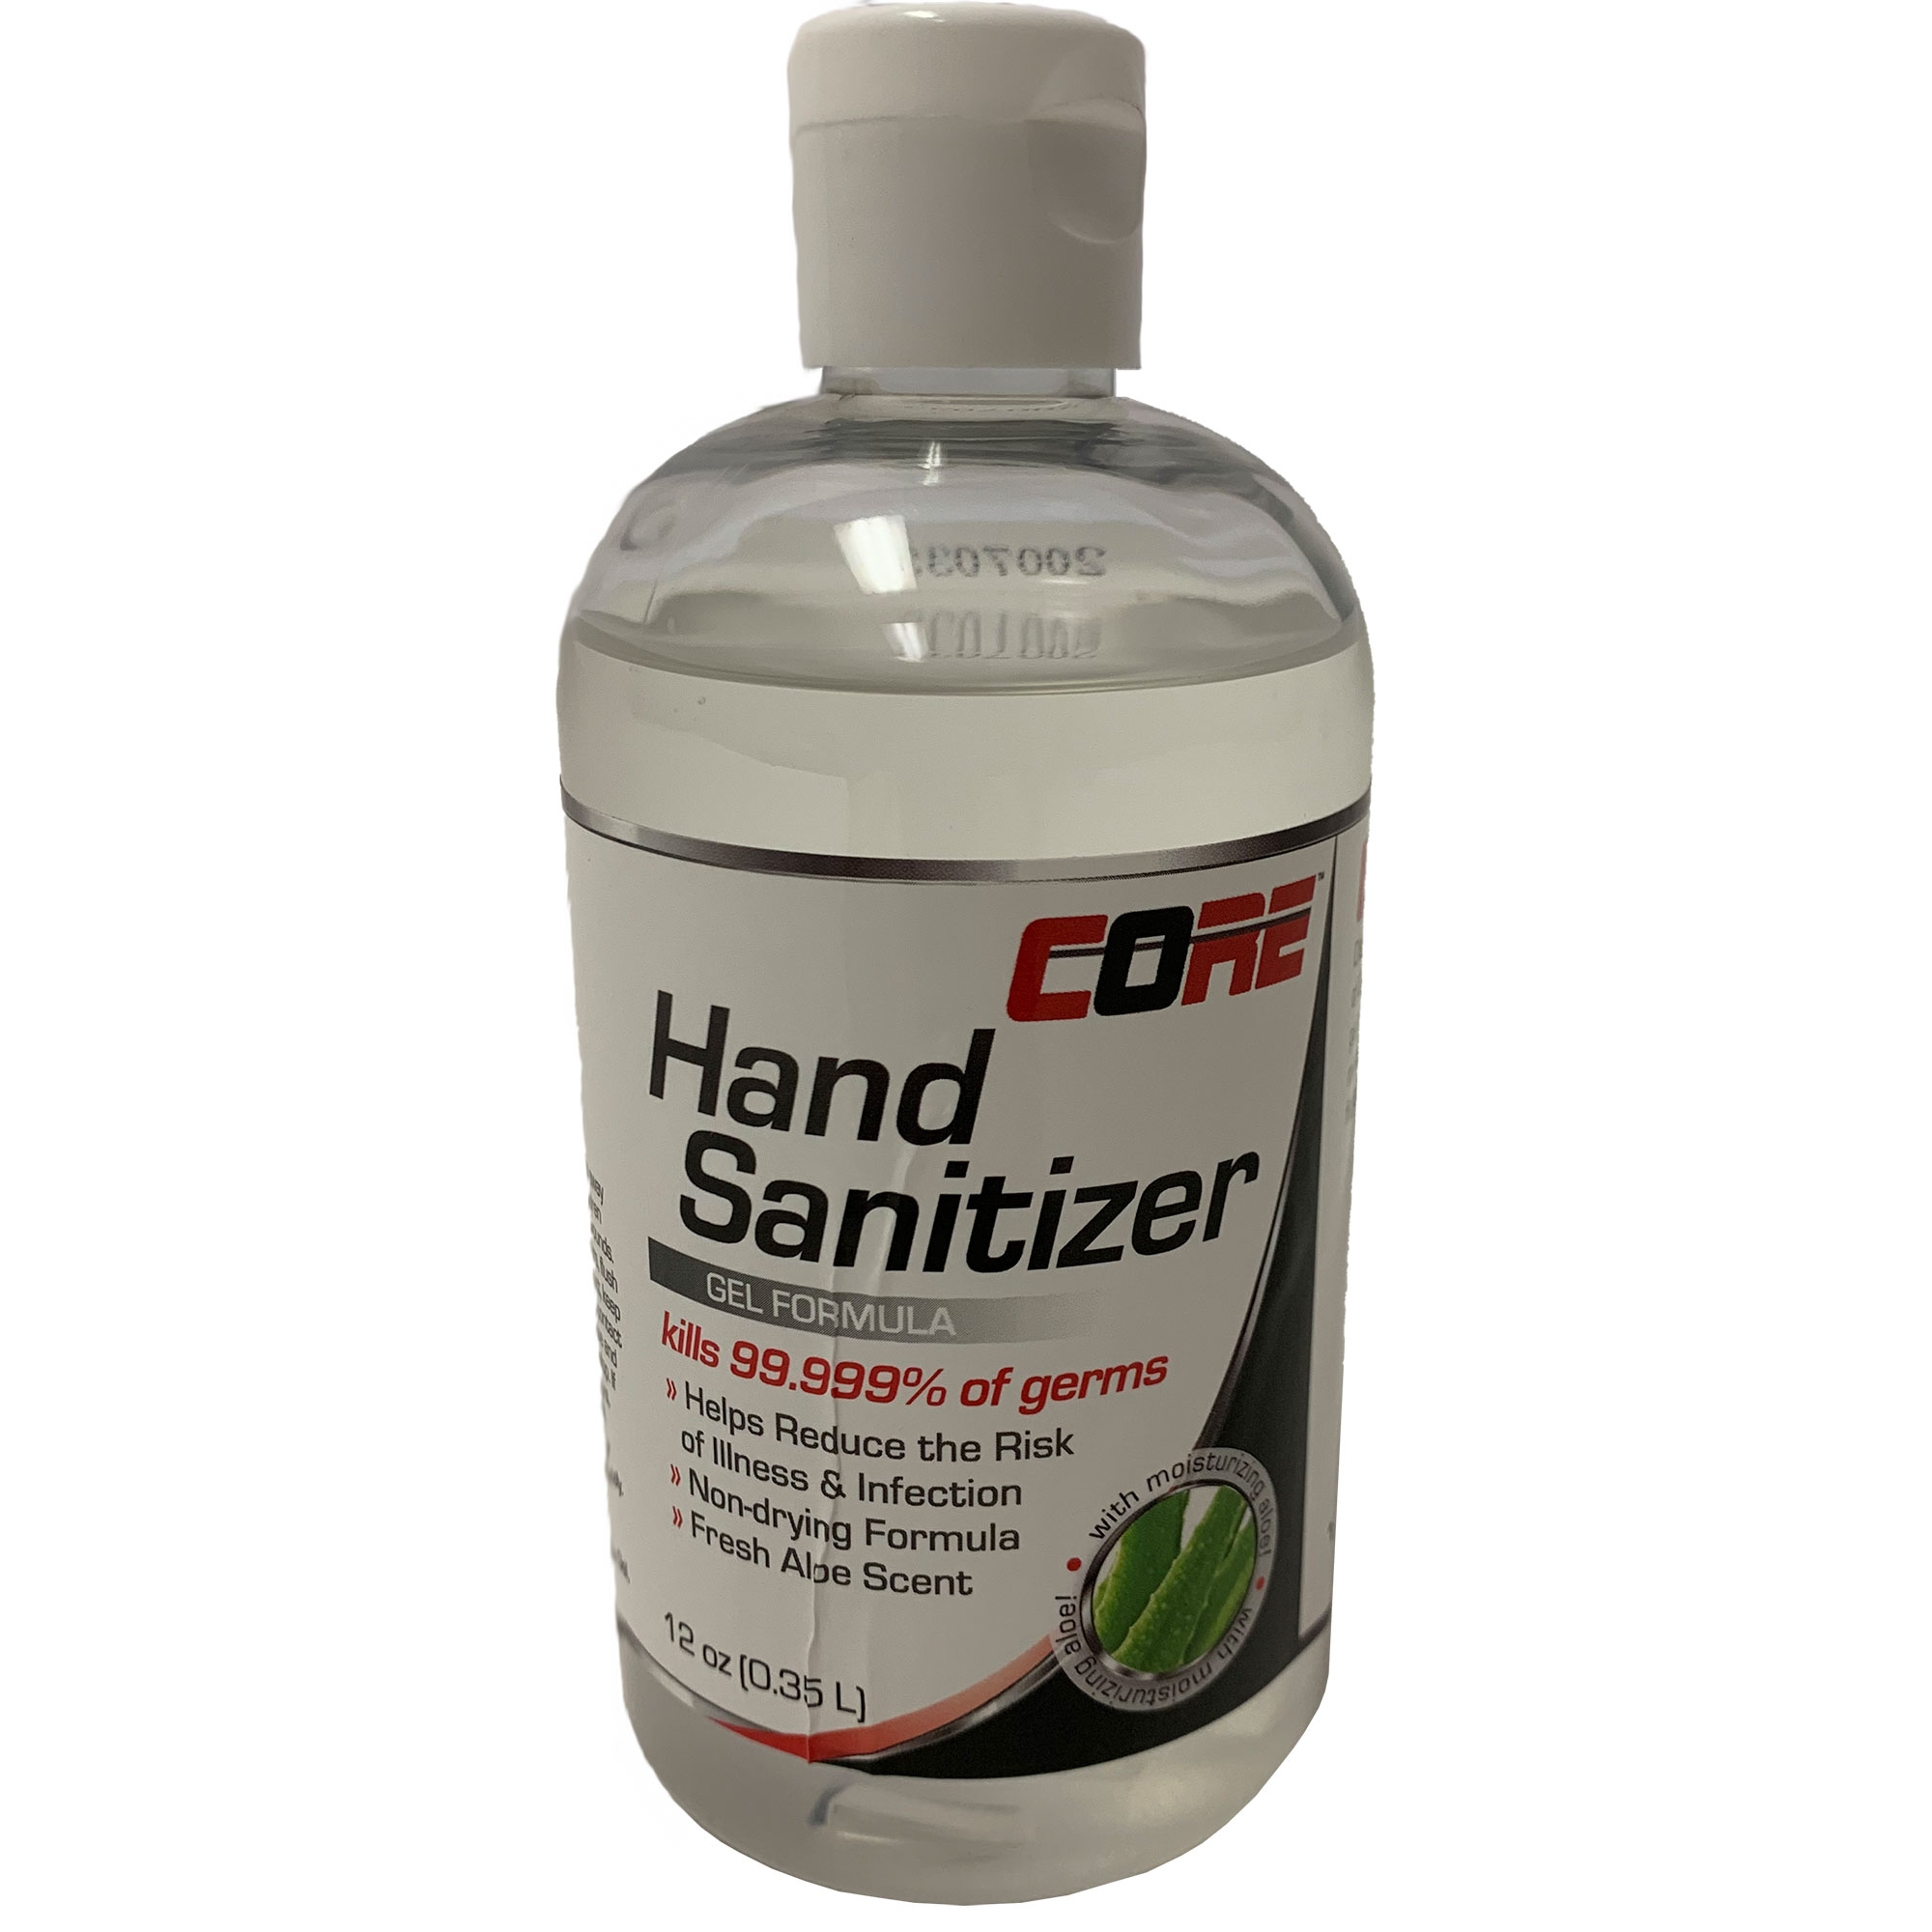 Core Hand Sanitizer Gel with Aloe, Kills 99.999% of Germs, 12oz Flip-Top Squeeze Bottle